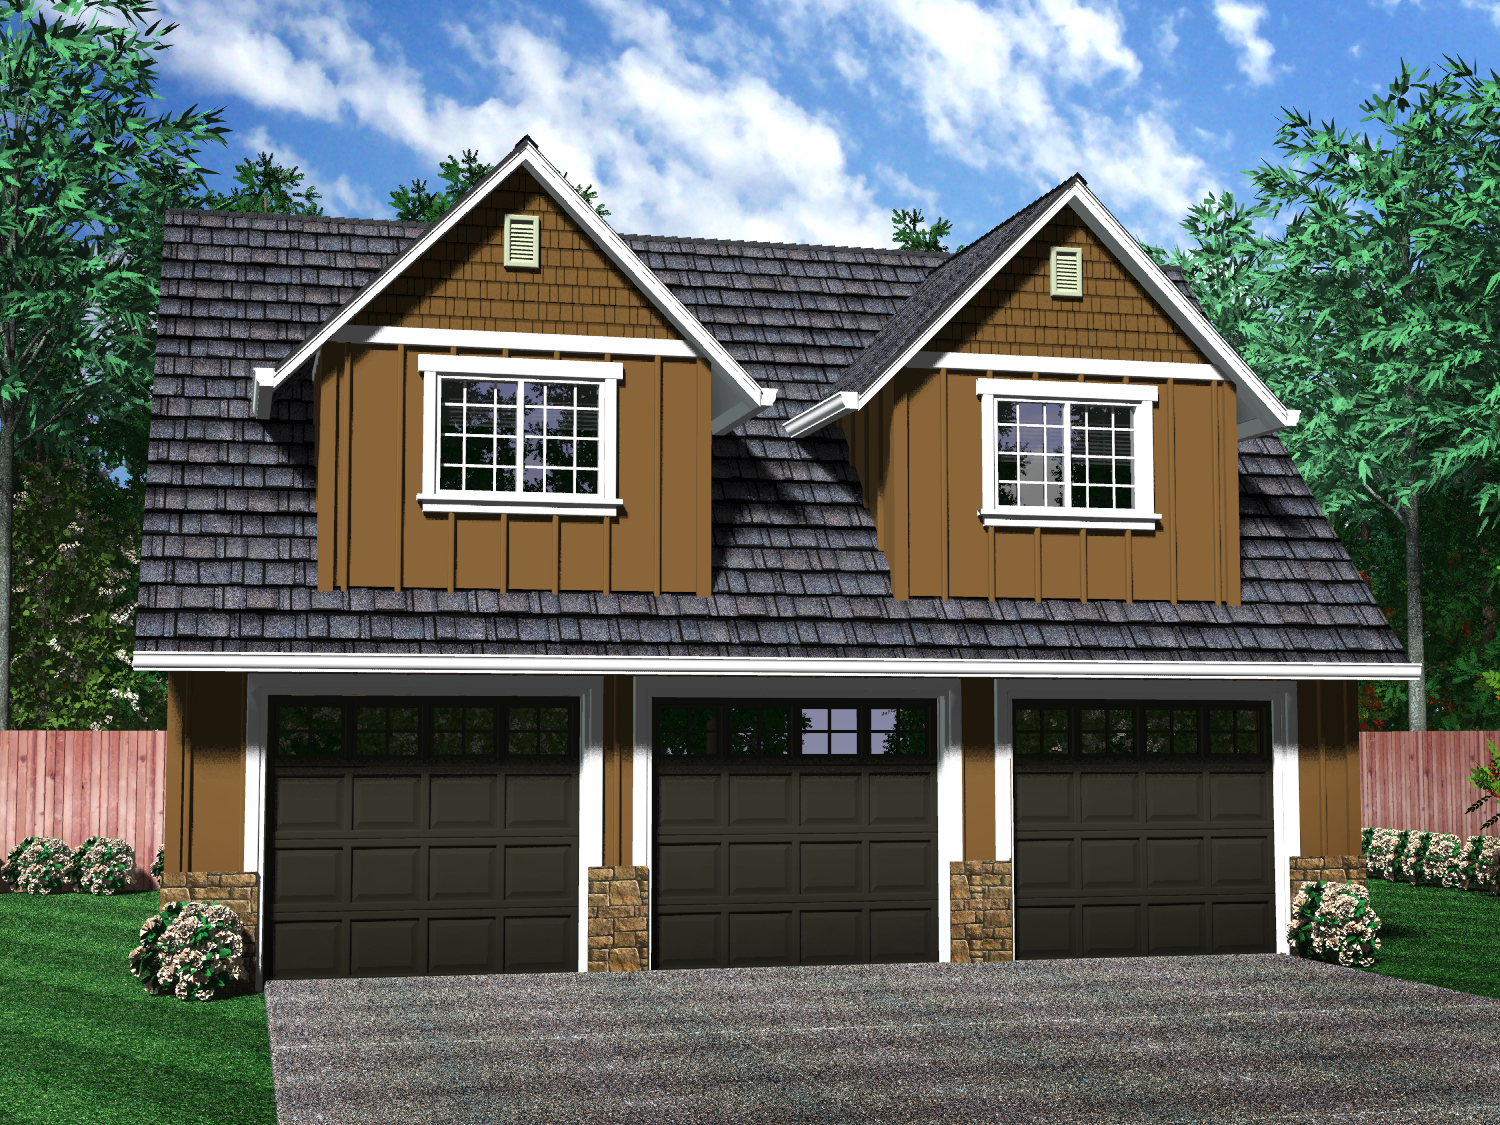 8 Fresh 3 Car Garage With Apartment Above - Home Plans ...